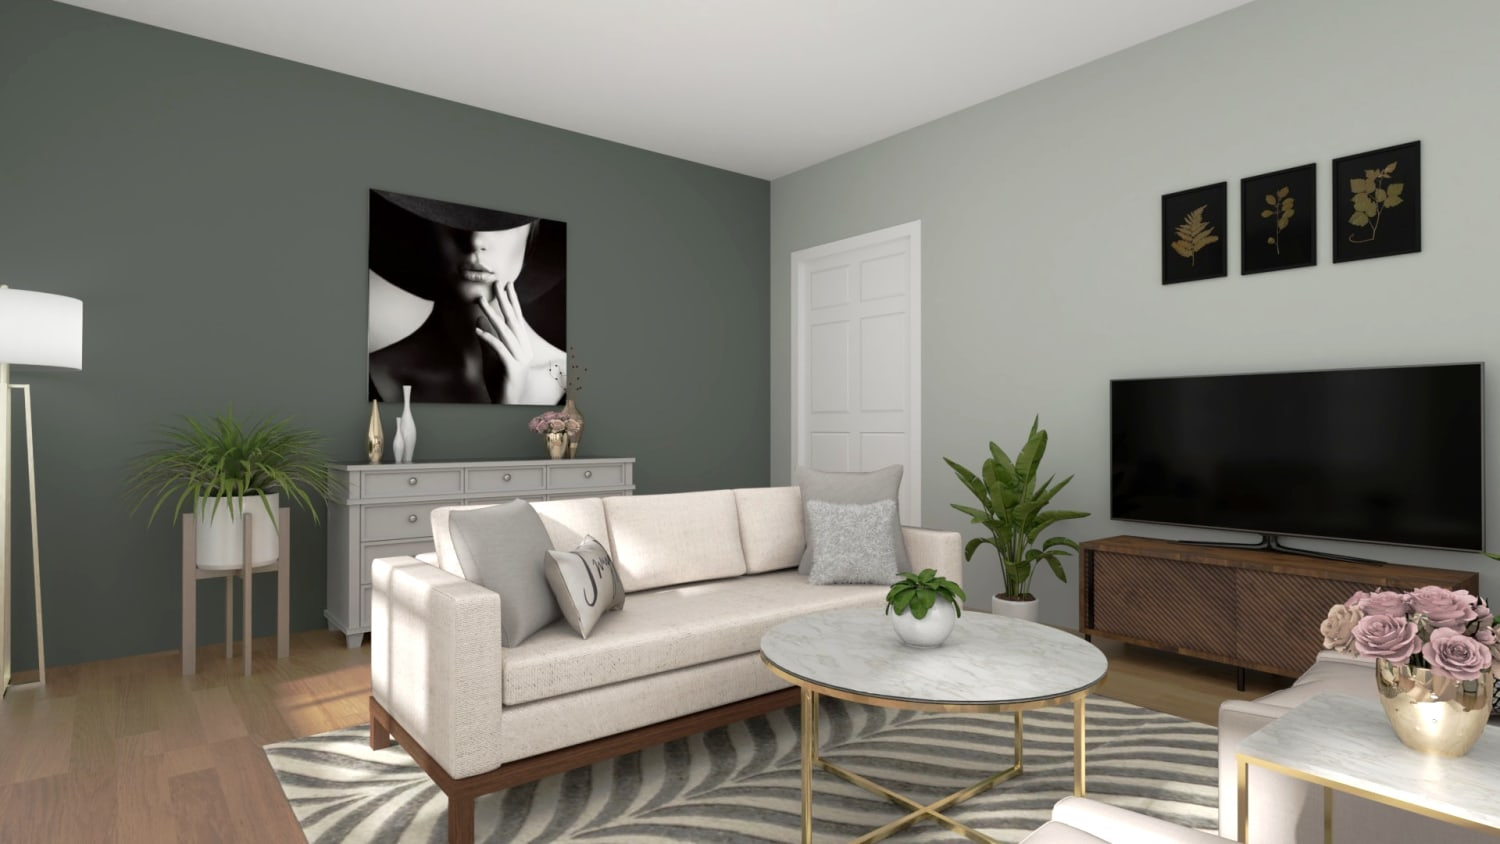 An Elegant and Glam Living Room Designed in a Neutral Palette Design By Spacejoy